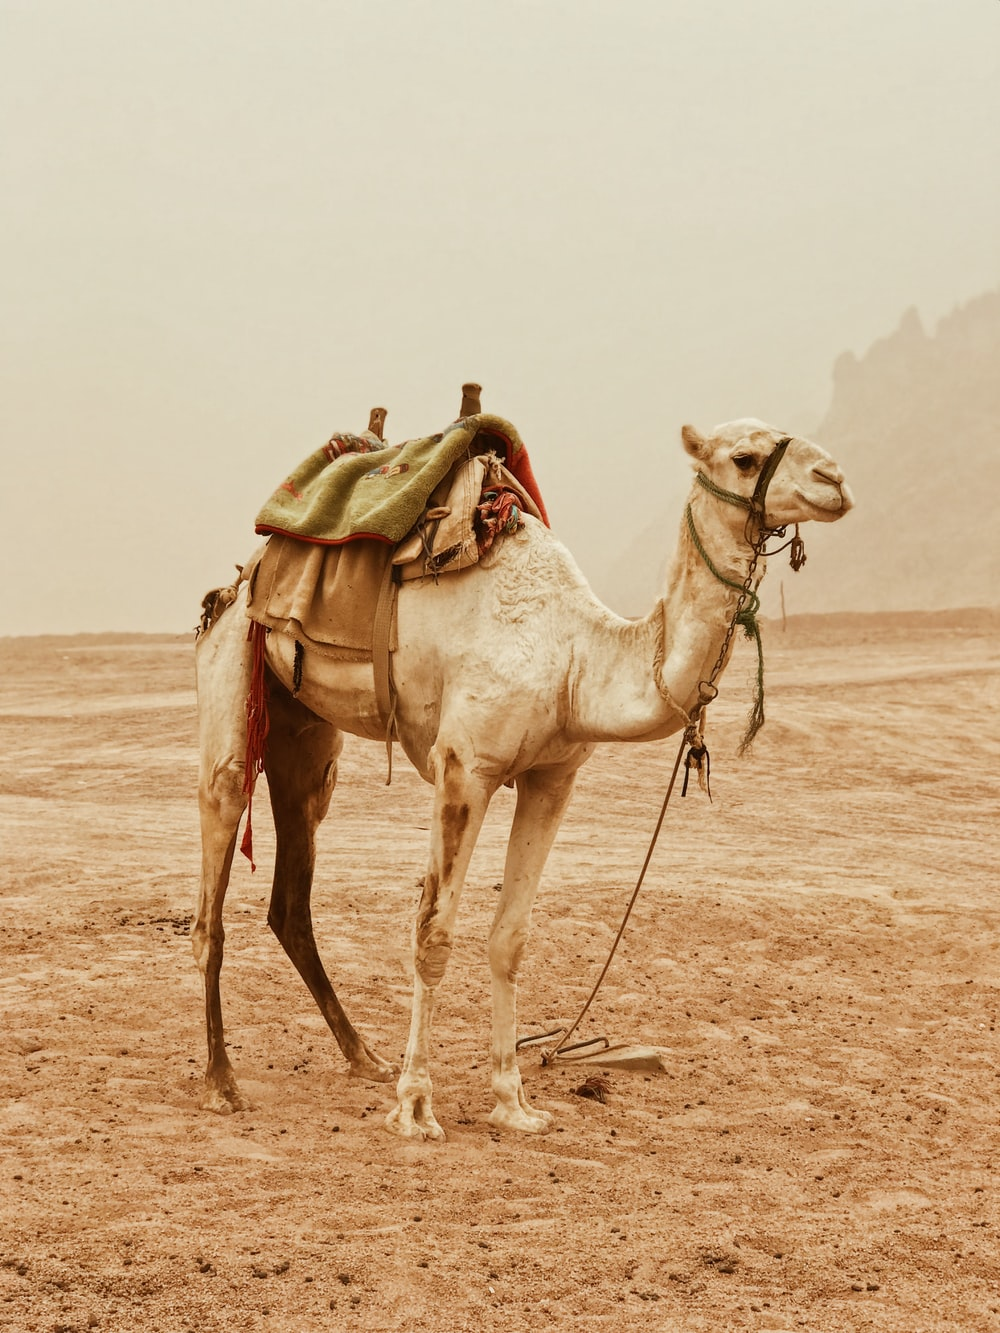 camel standing on desert